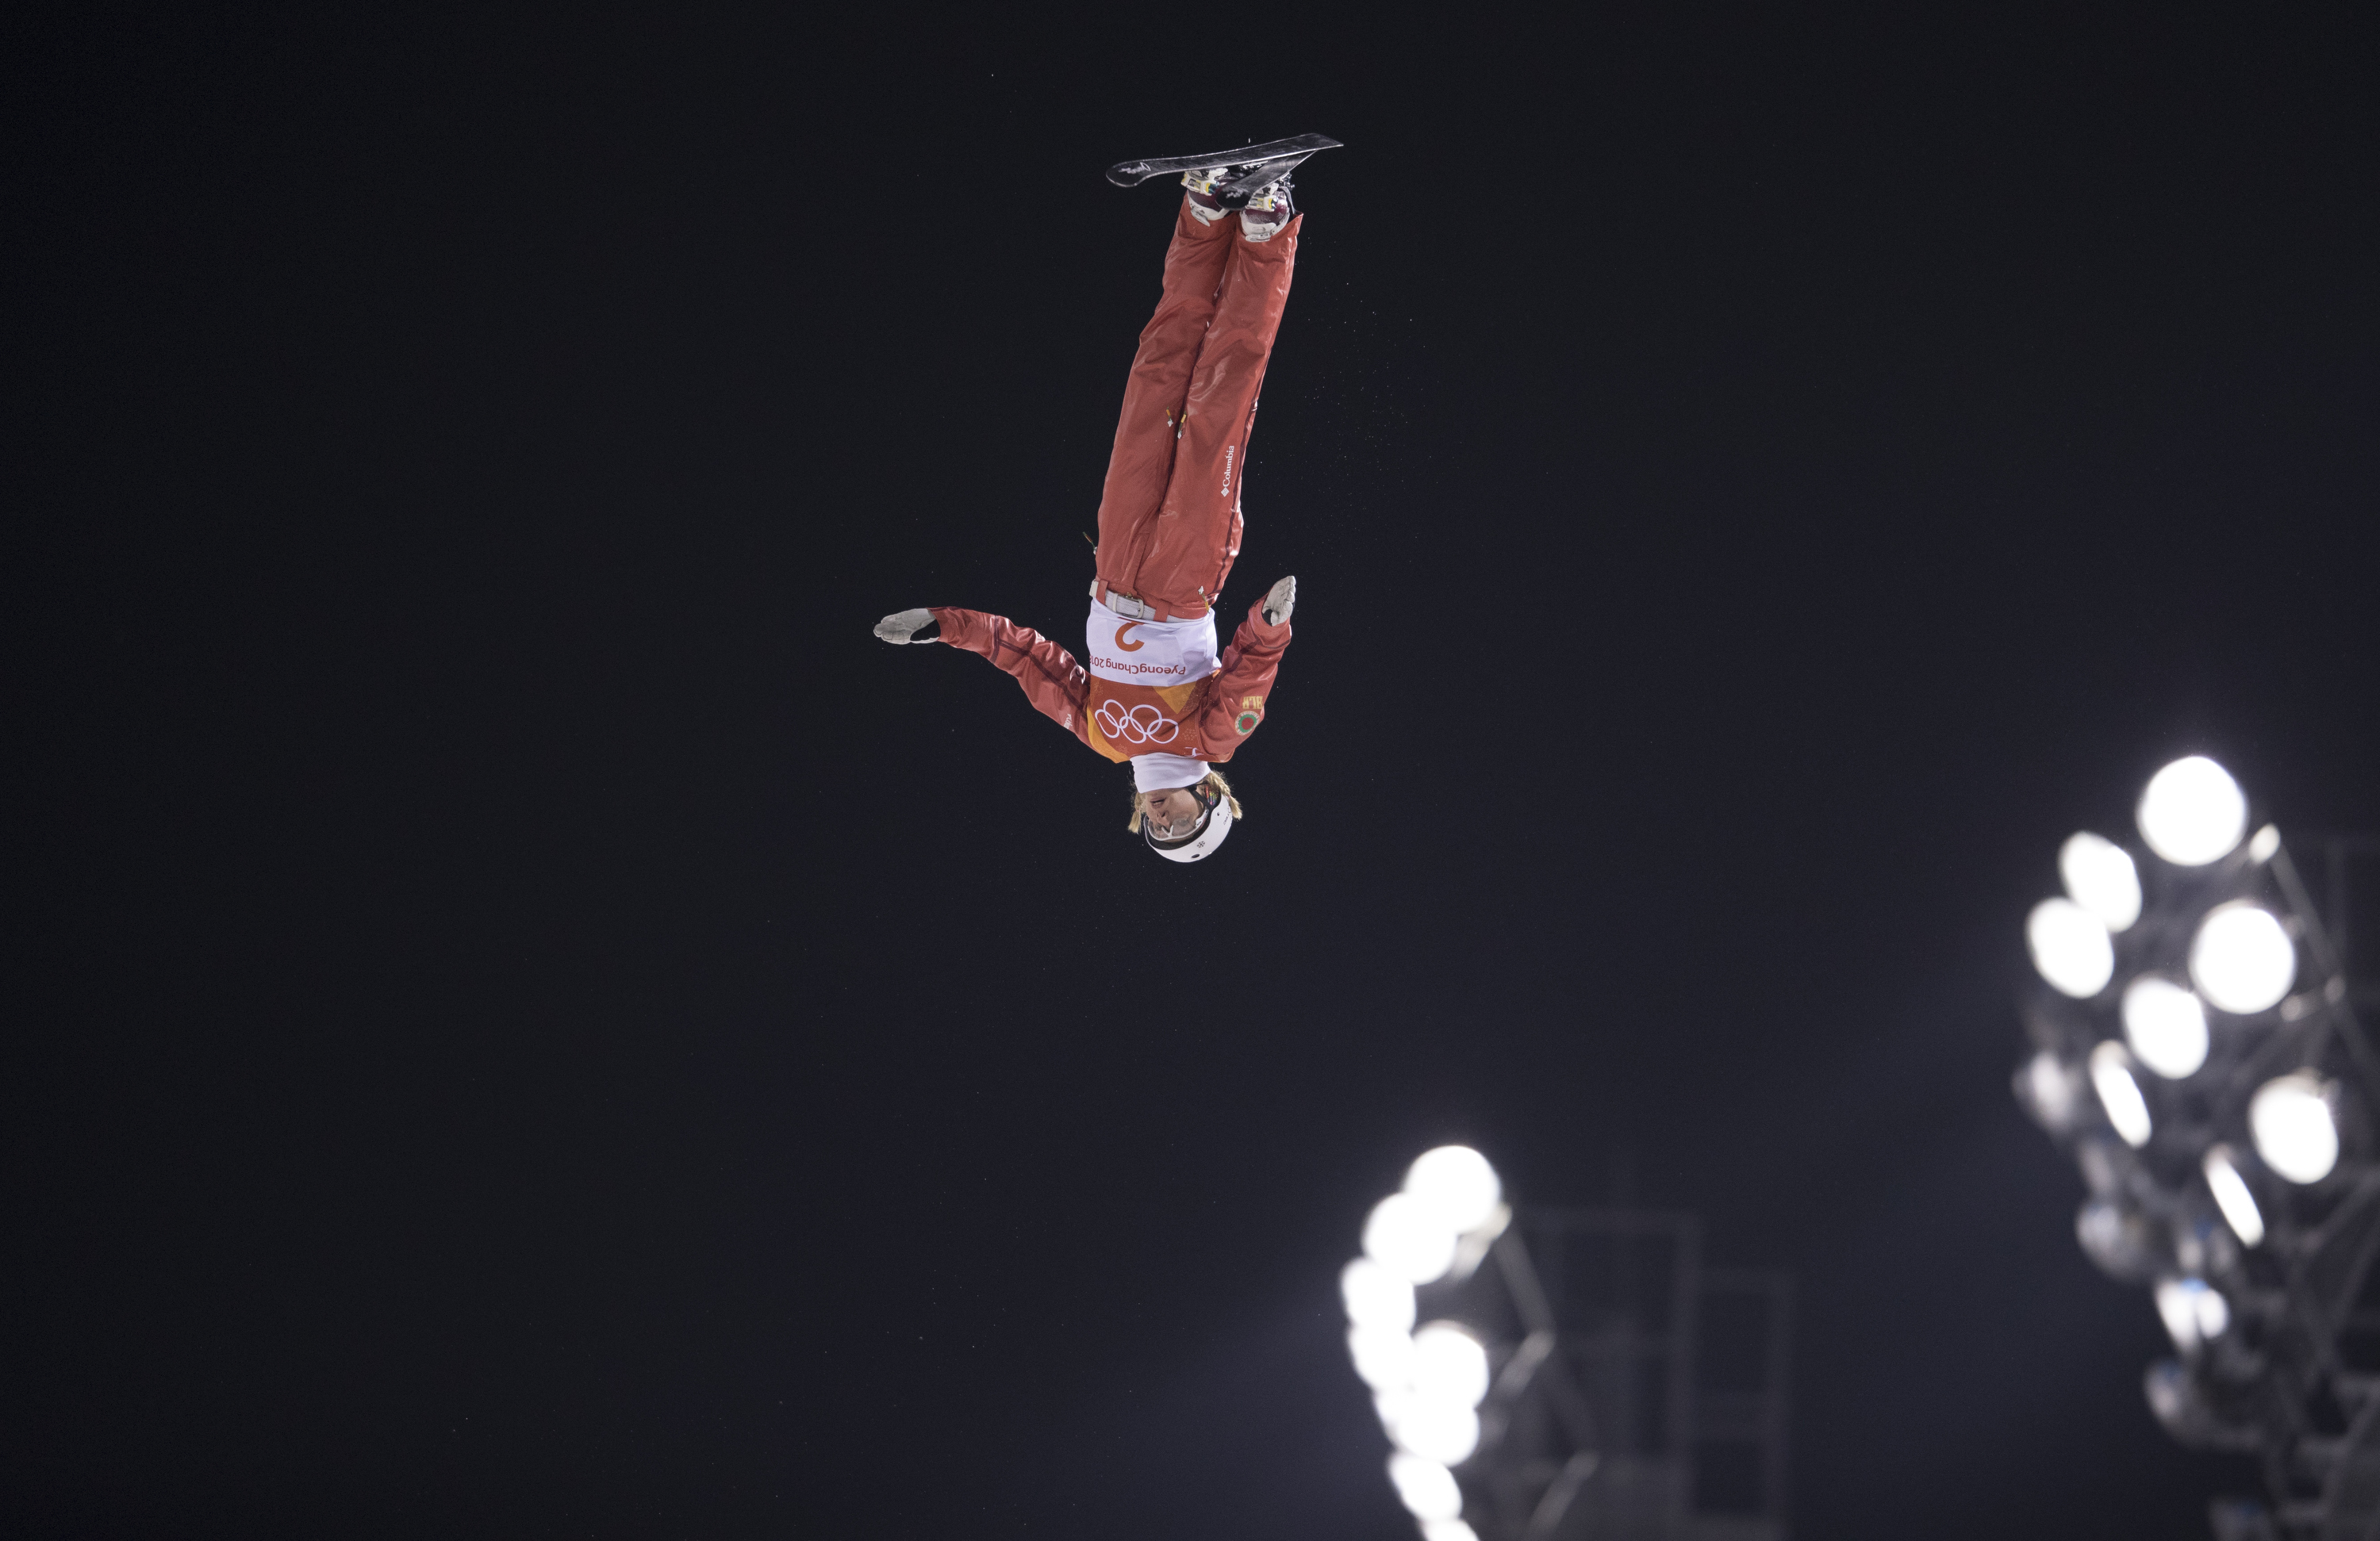 Hanna Huskova of Belarus competes during the Freestyle Skiing Ladies' Aerials Final on day seven of the PyeongChang 2018 Winter Olympic Games at Phoenix Snow Park on February 16, 2018 in Pyeongchang-gun, South Korea.